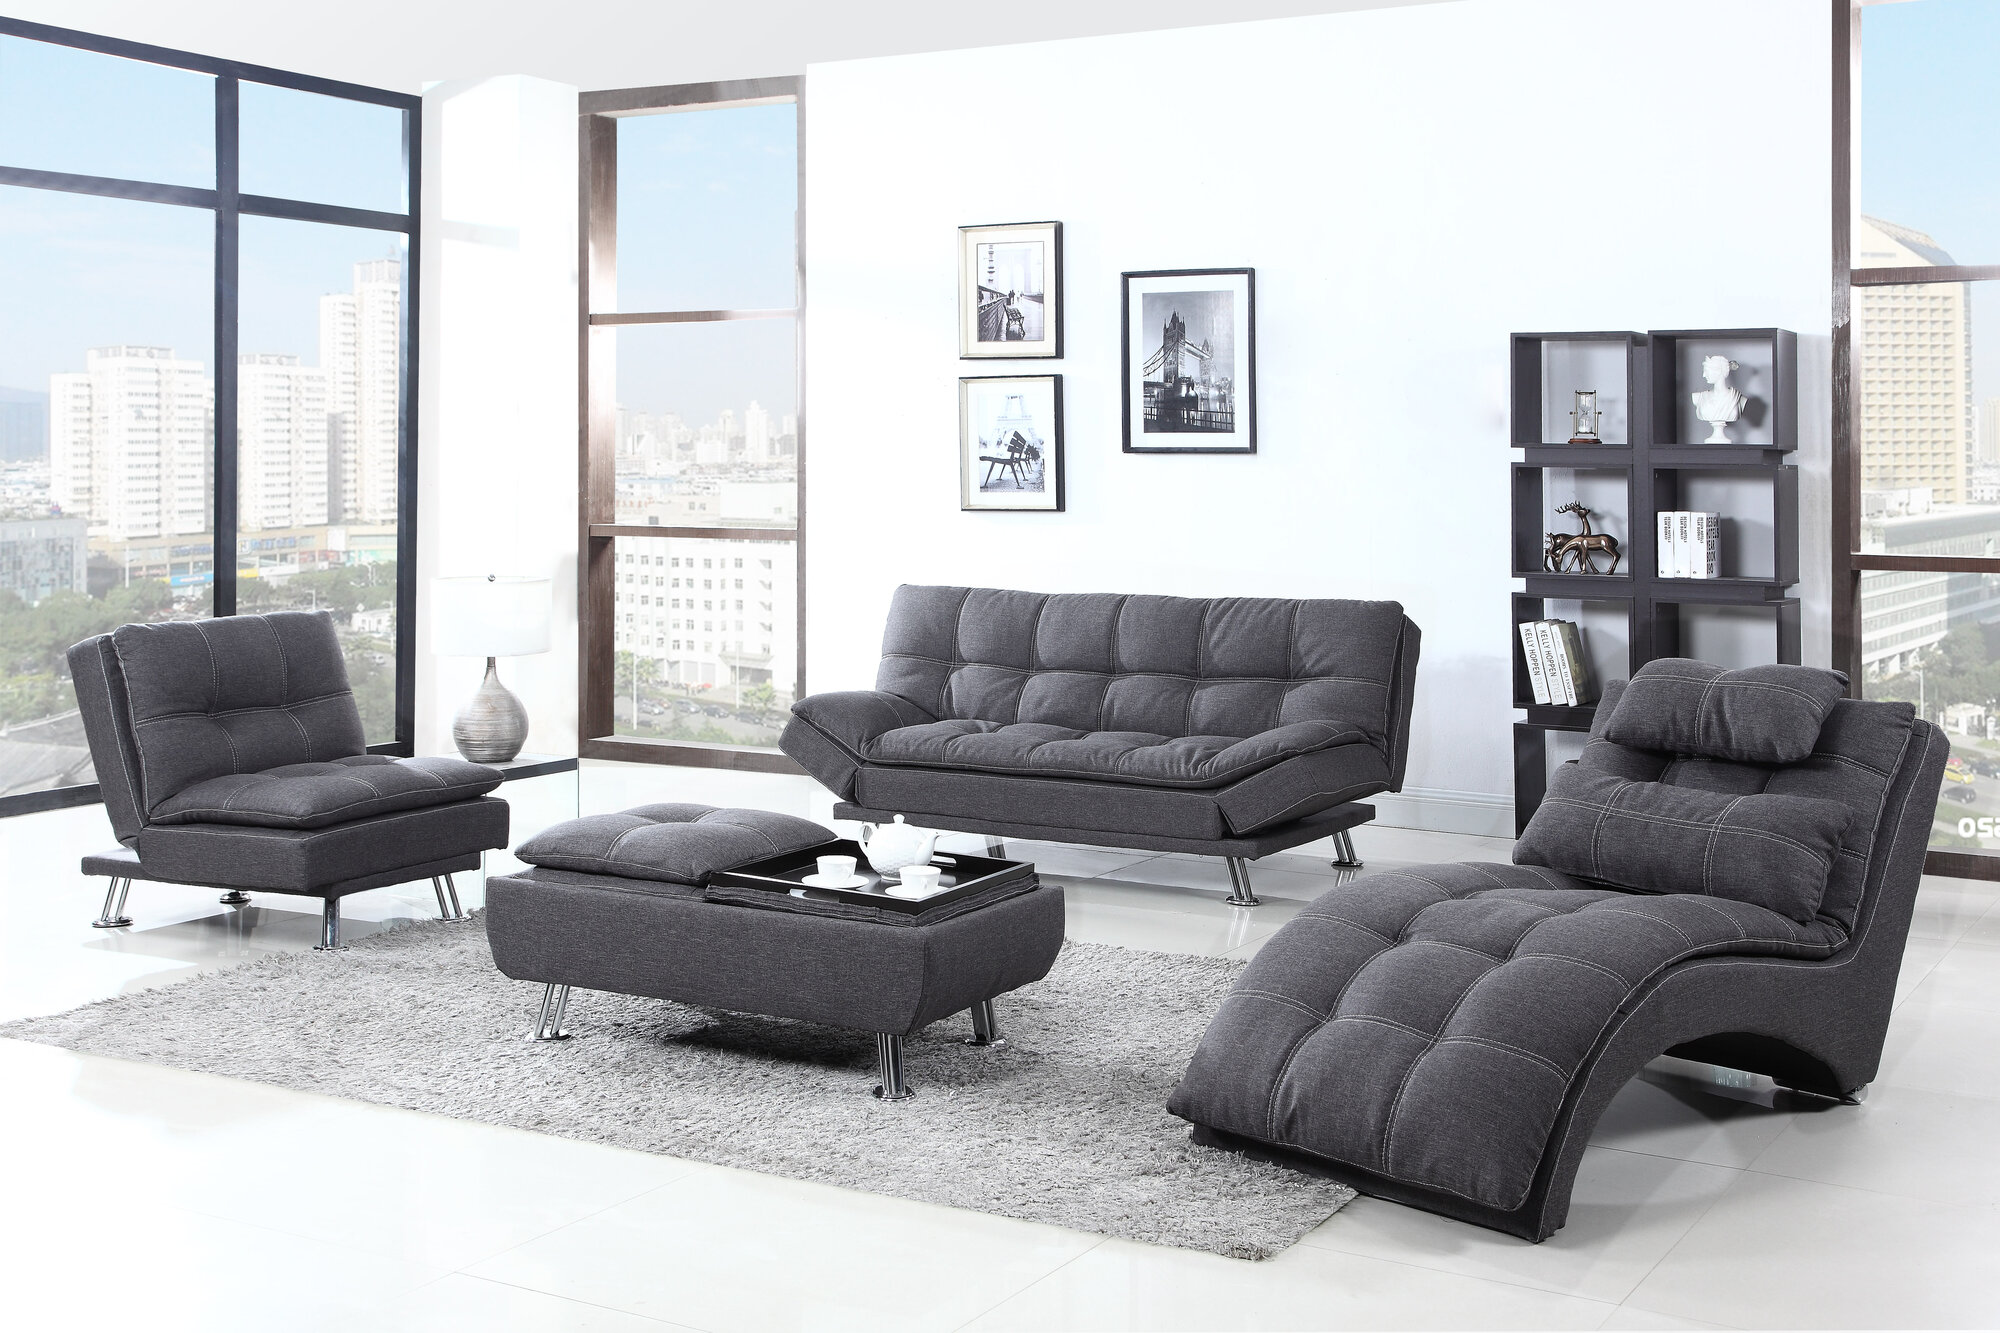 Best Quality Furniture Chaise Lounge